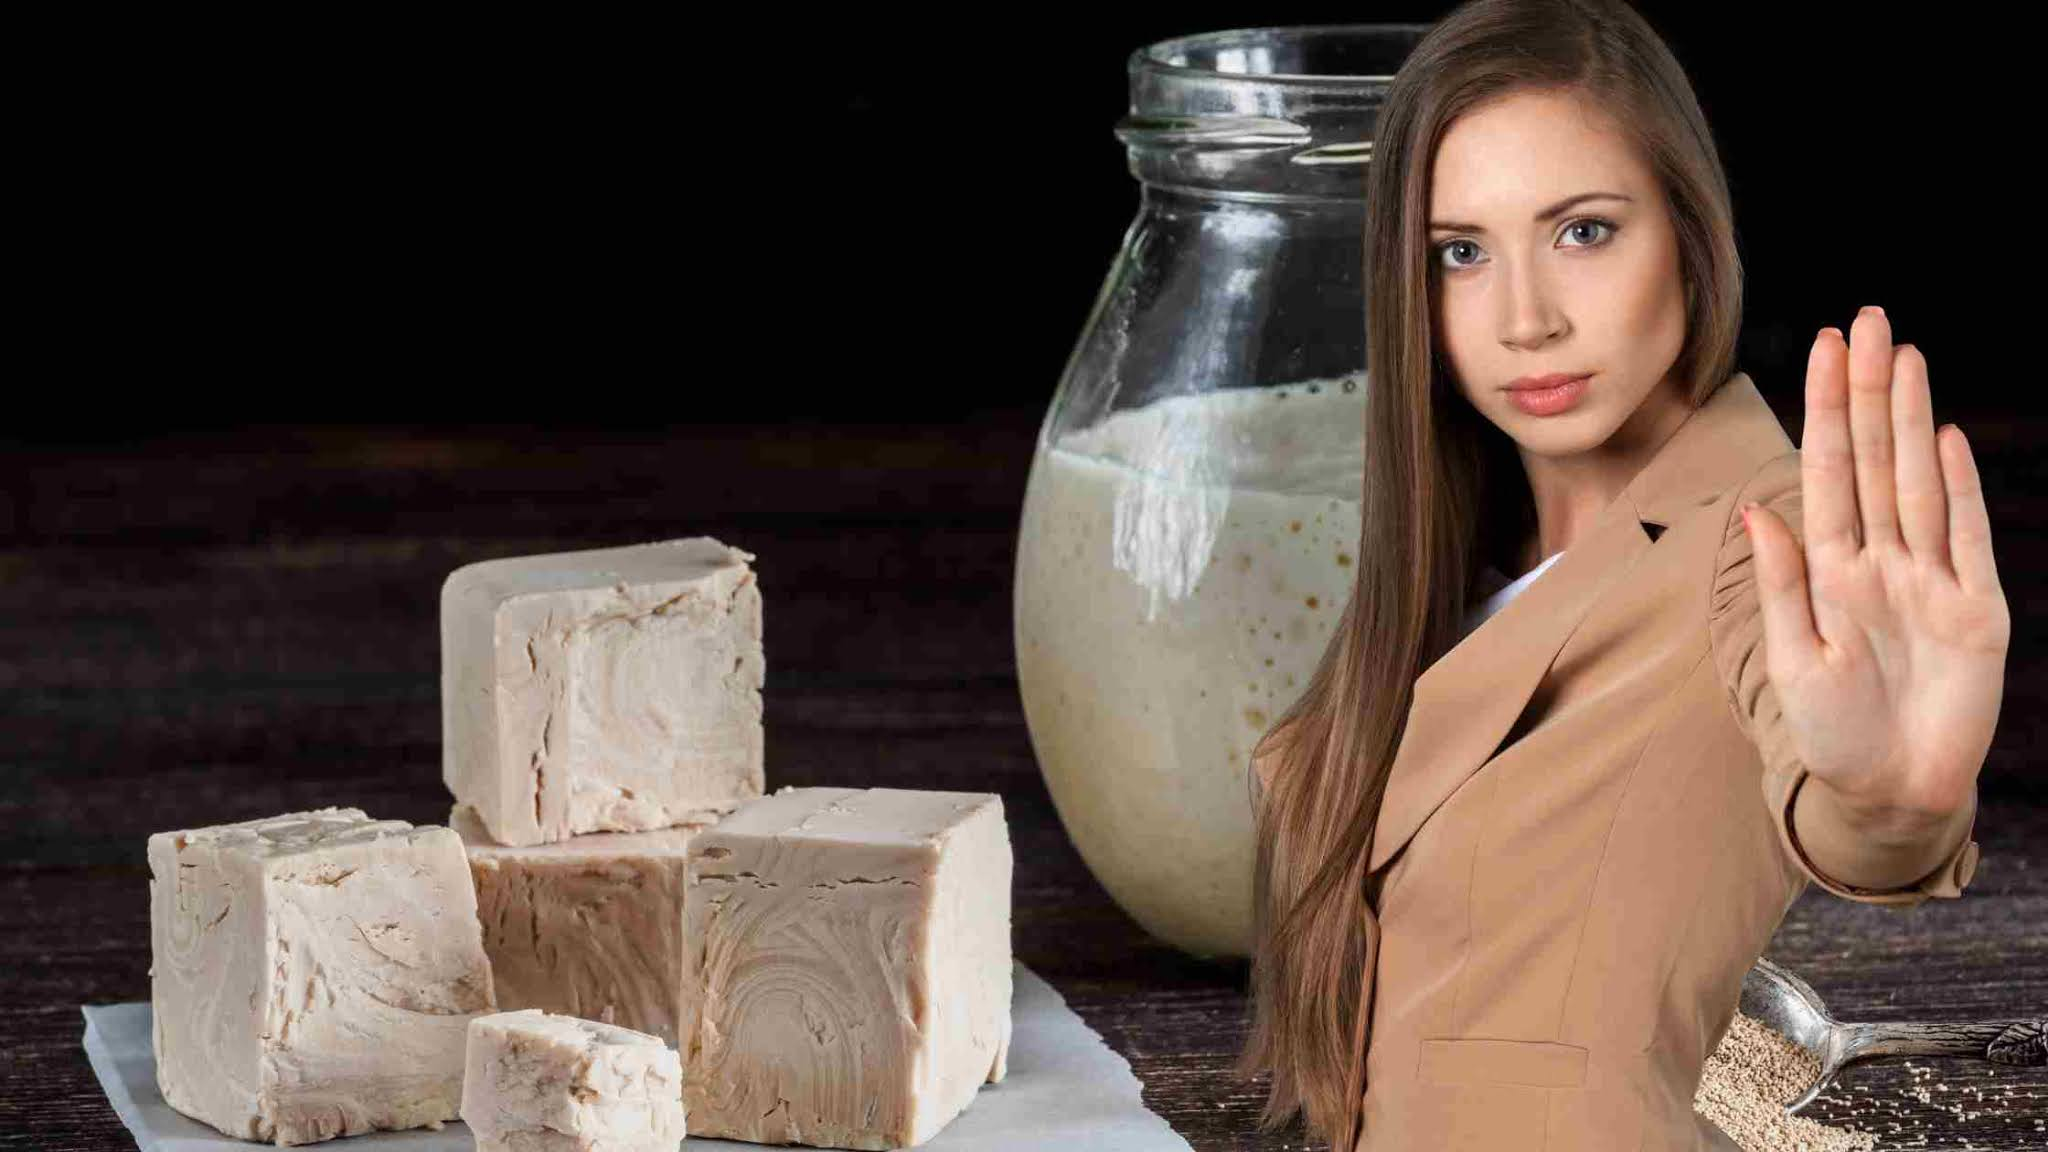 Top 10 Ways To Prevent Recurring Yeast Infection